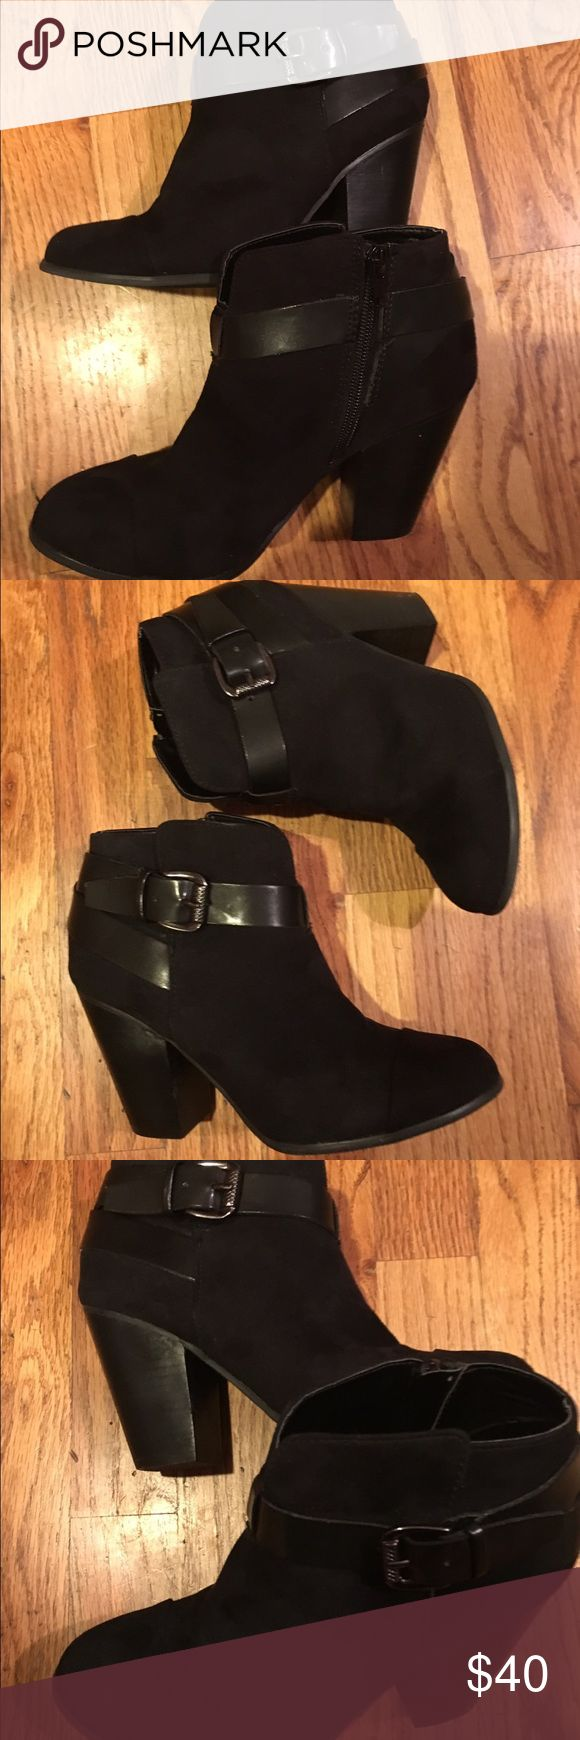 Carlos by Carlos Santana black harvest booties Carlos Santana booties faux suede with leather straps worn once Great condition with minor wear on heels .size 6 Carlos Santana Shoes Ankle Boots & Booties